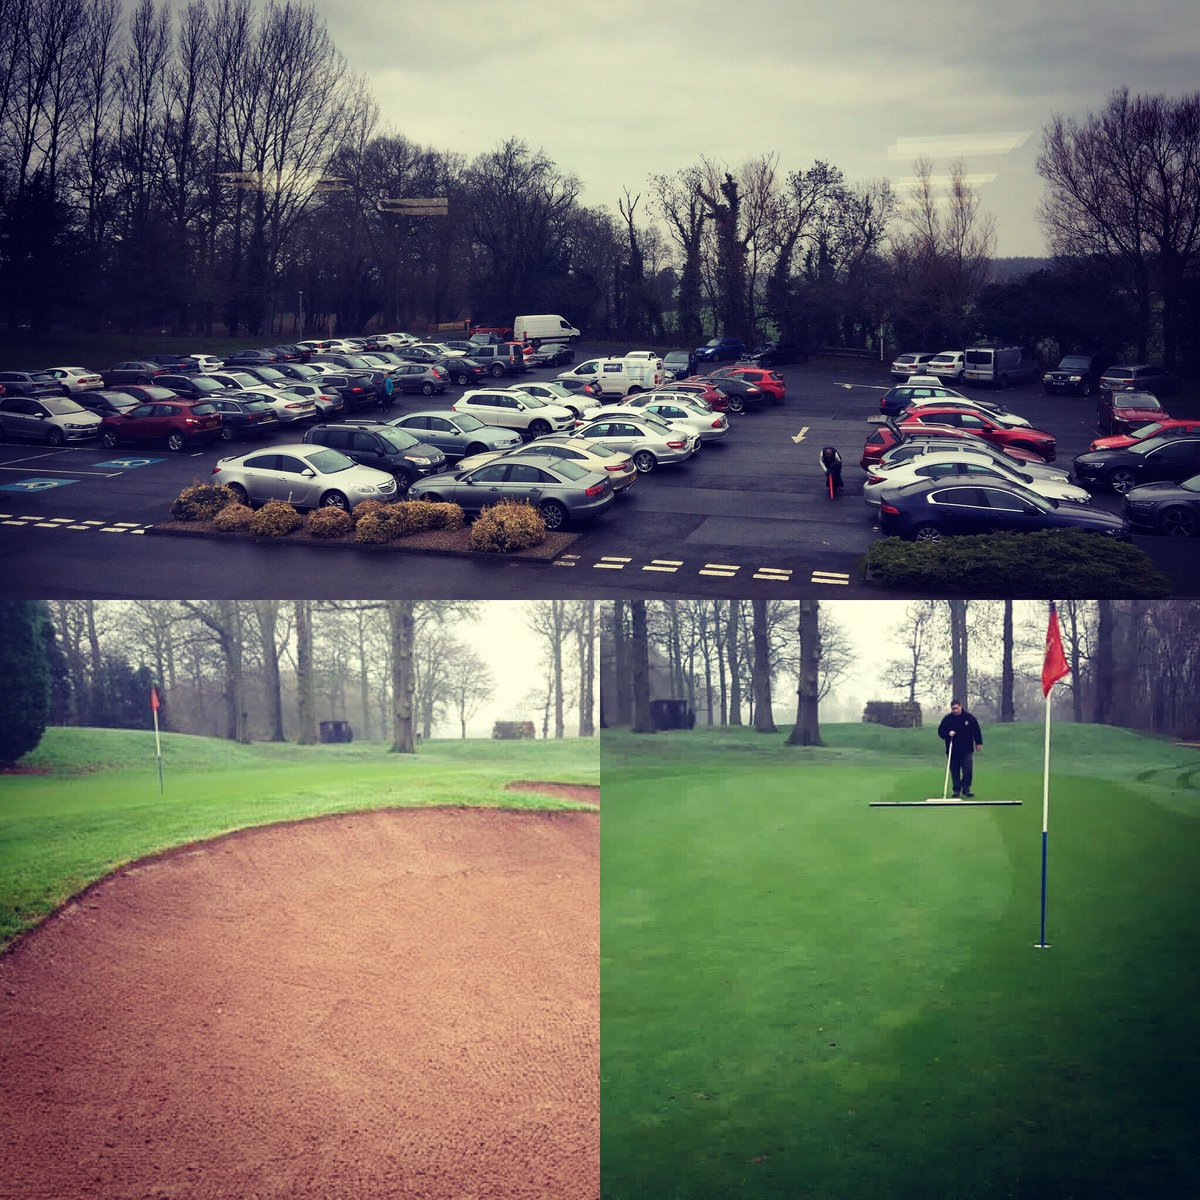 test Twitter Media - Everyone clearly missed us at @ingestreparkgolf over the Christmas period. Car park is full and everyone is burning off their Christmas turkey on the golf course!  #christmas #boxingday #turkey #christmasturkey #golf @MidlandsGolfer @staffsgolf  @EnglandGolf @StaffsSport https://t.co/9d3OkNGXmw